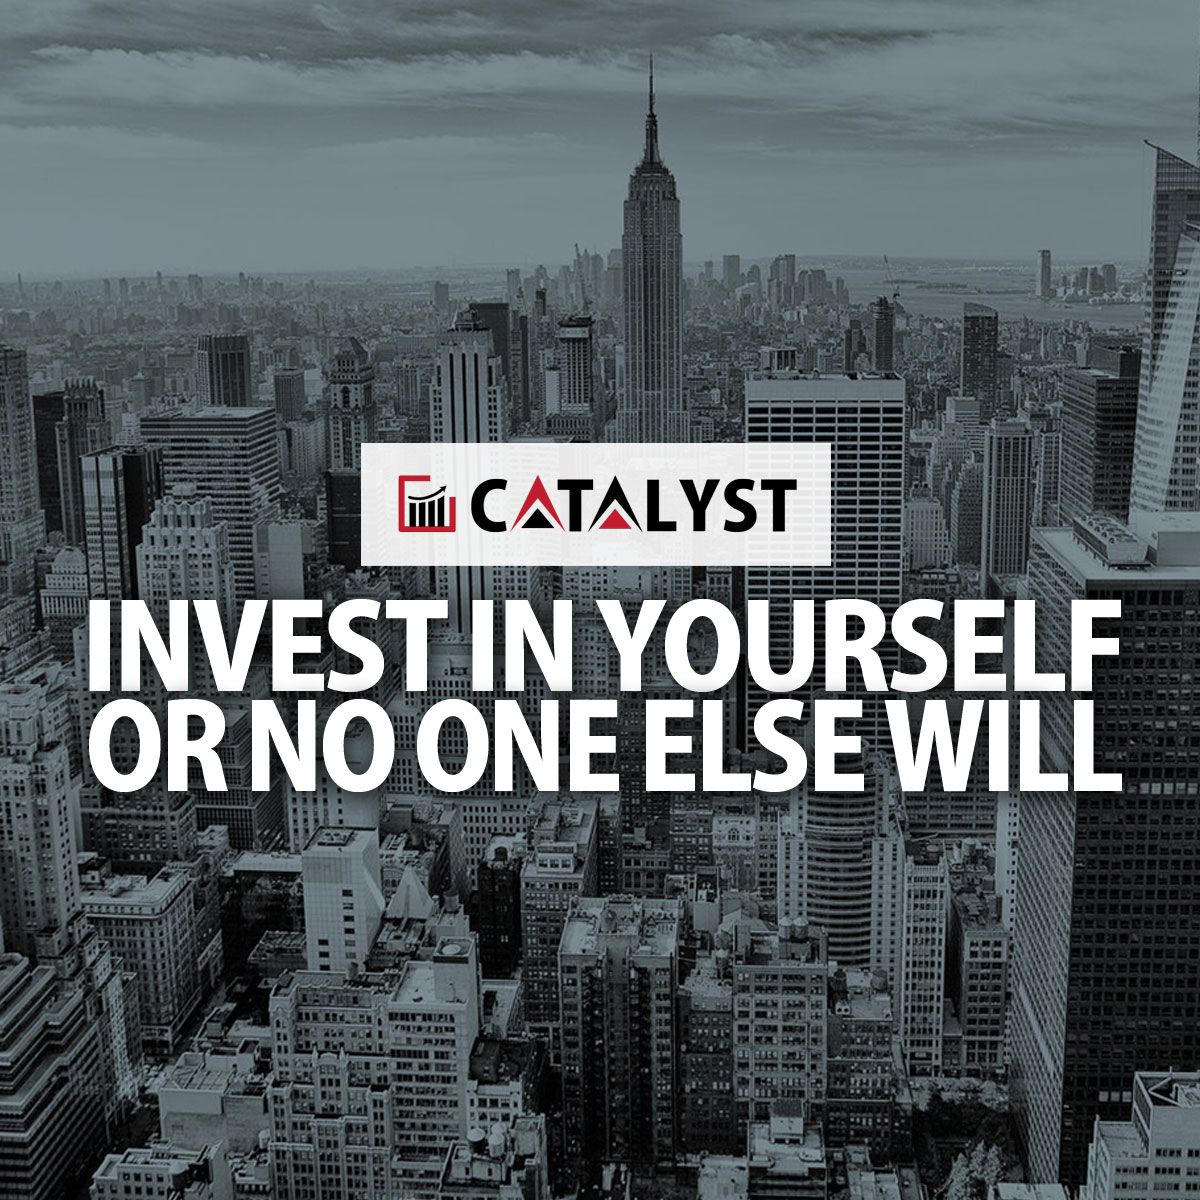 Invest in yourself or no one else will best investing quotes invest in yourself or no one else will do it solutioingenieria Images